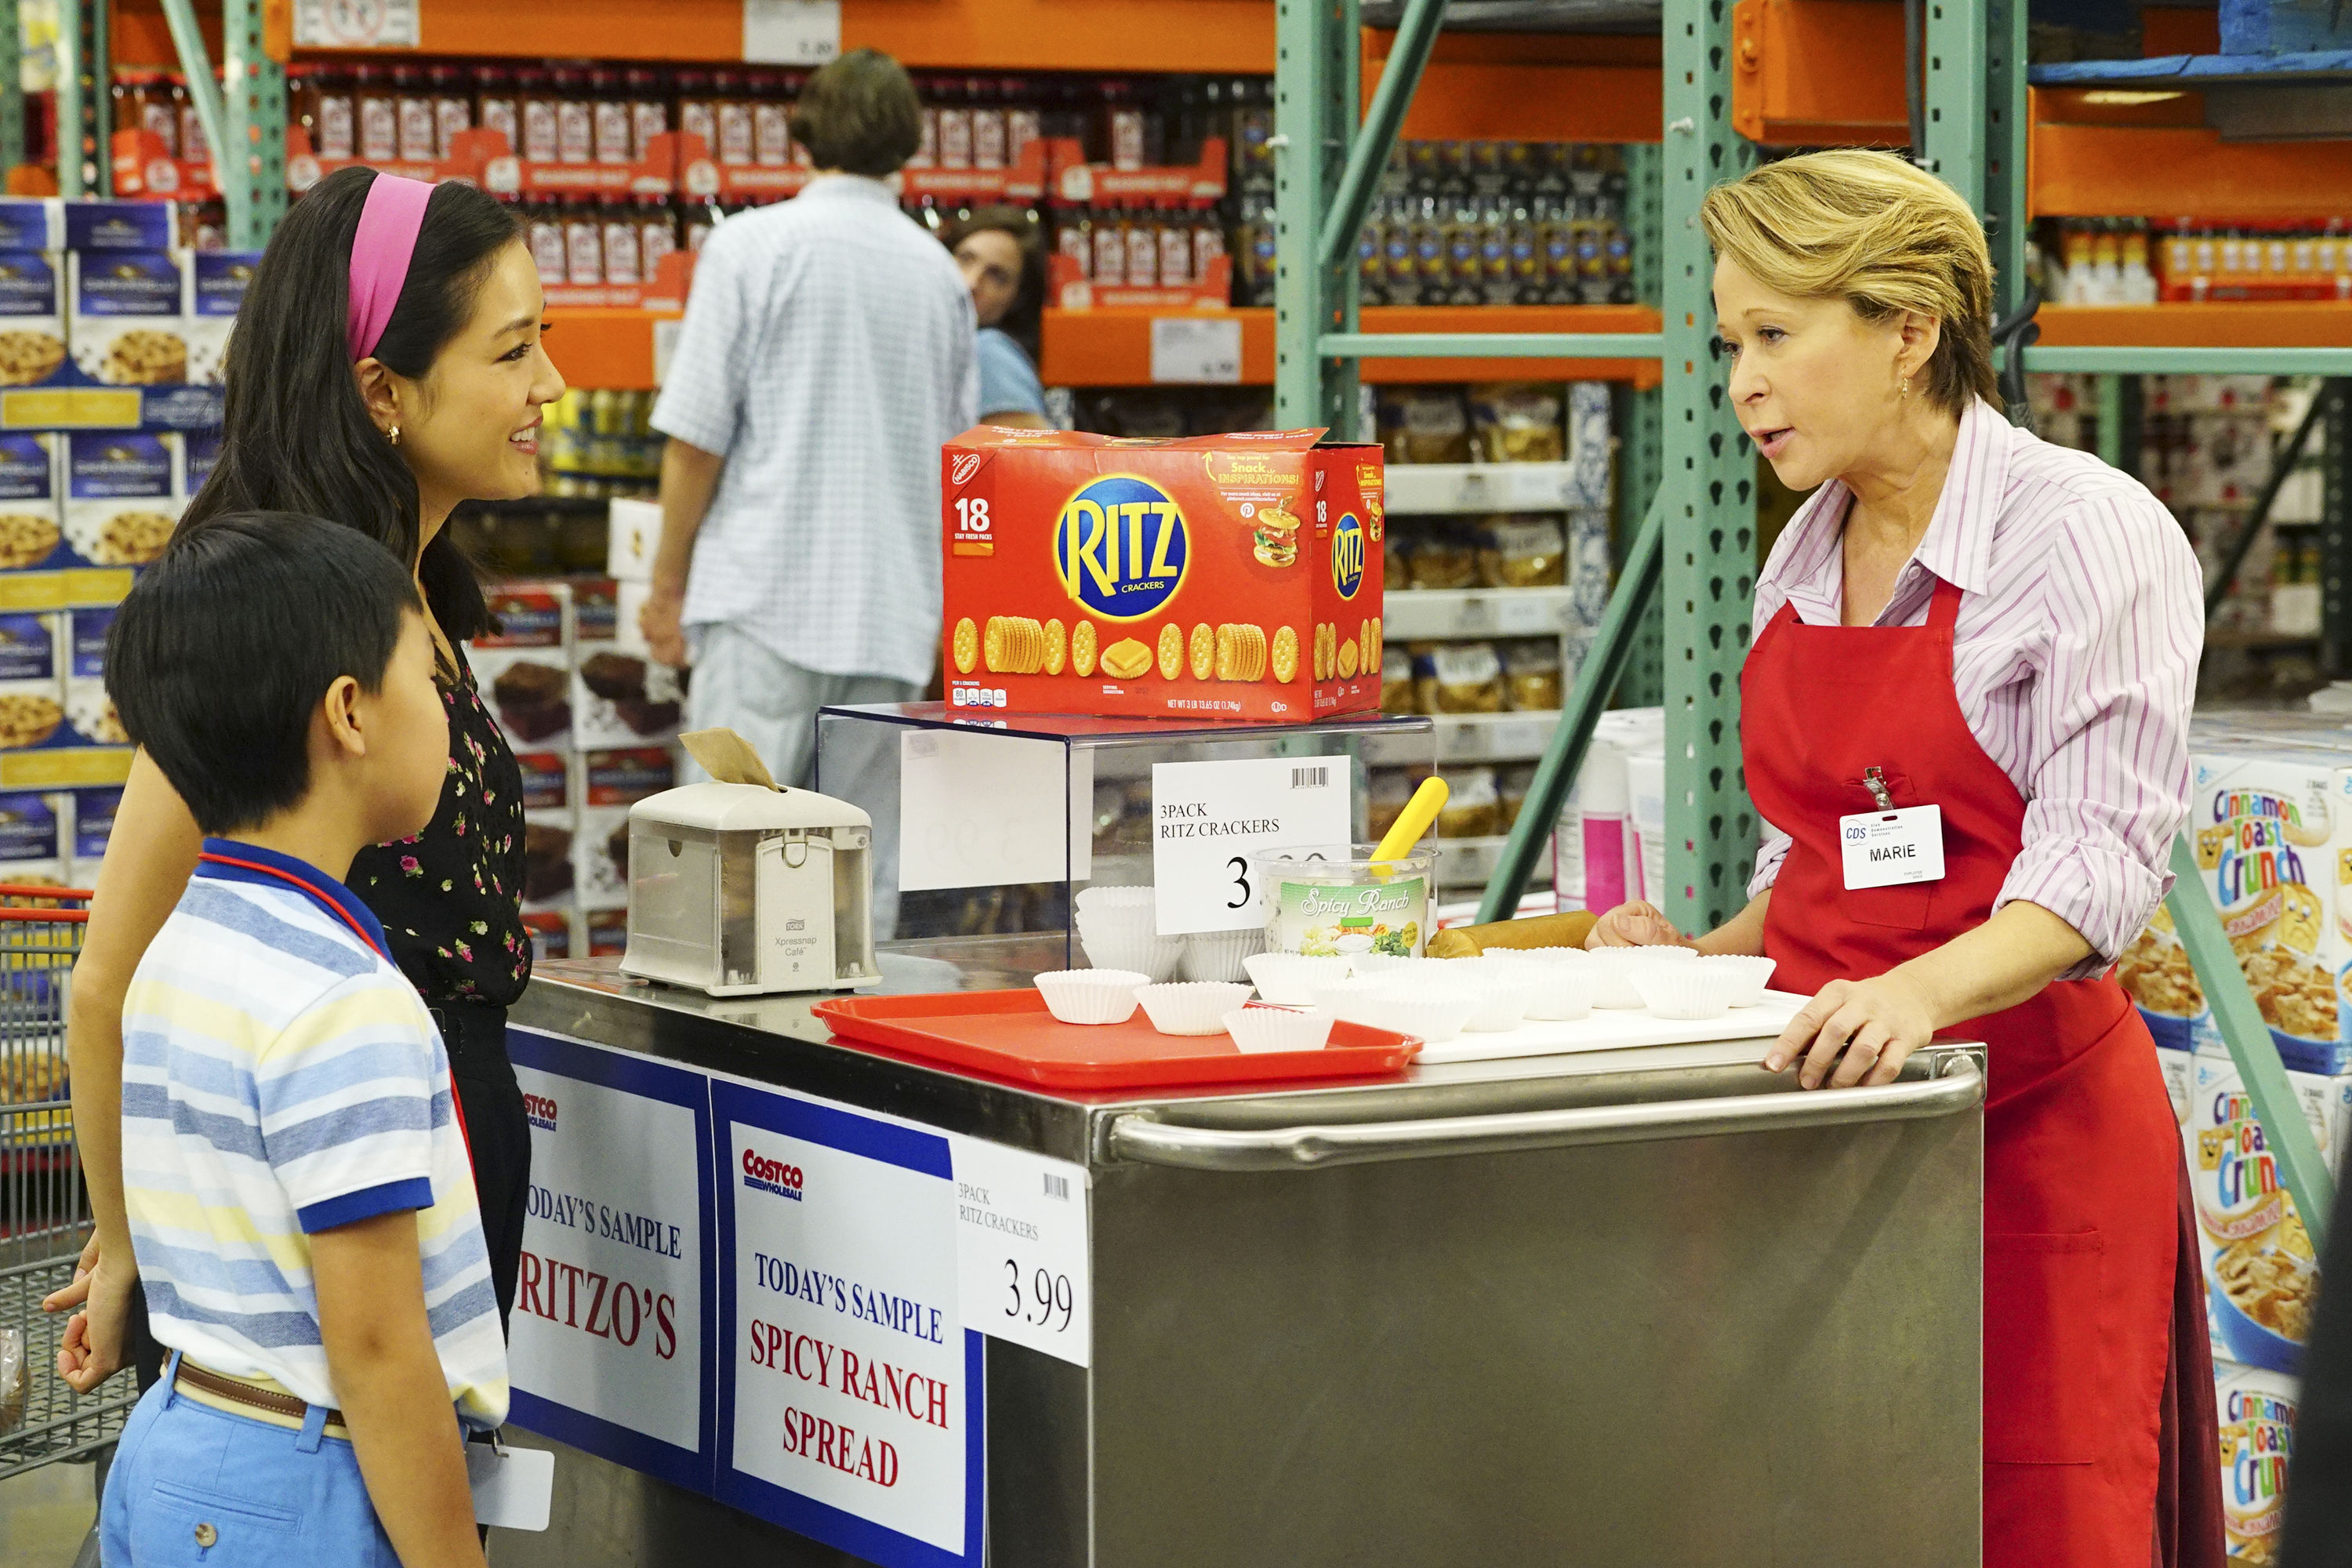 3 Things Most People Don't Know About Costco's Free Samples